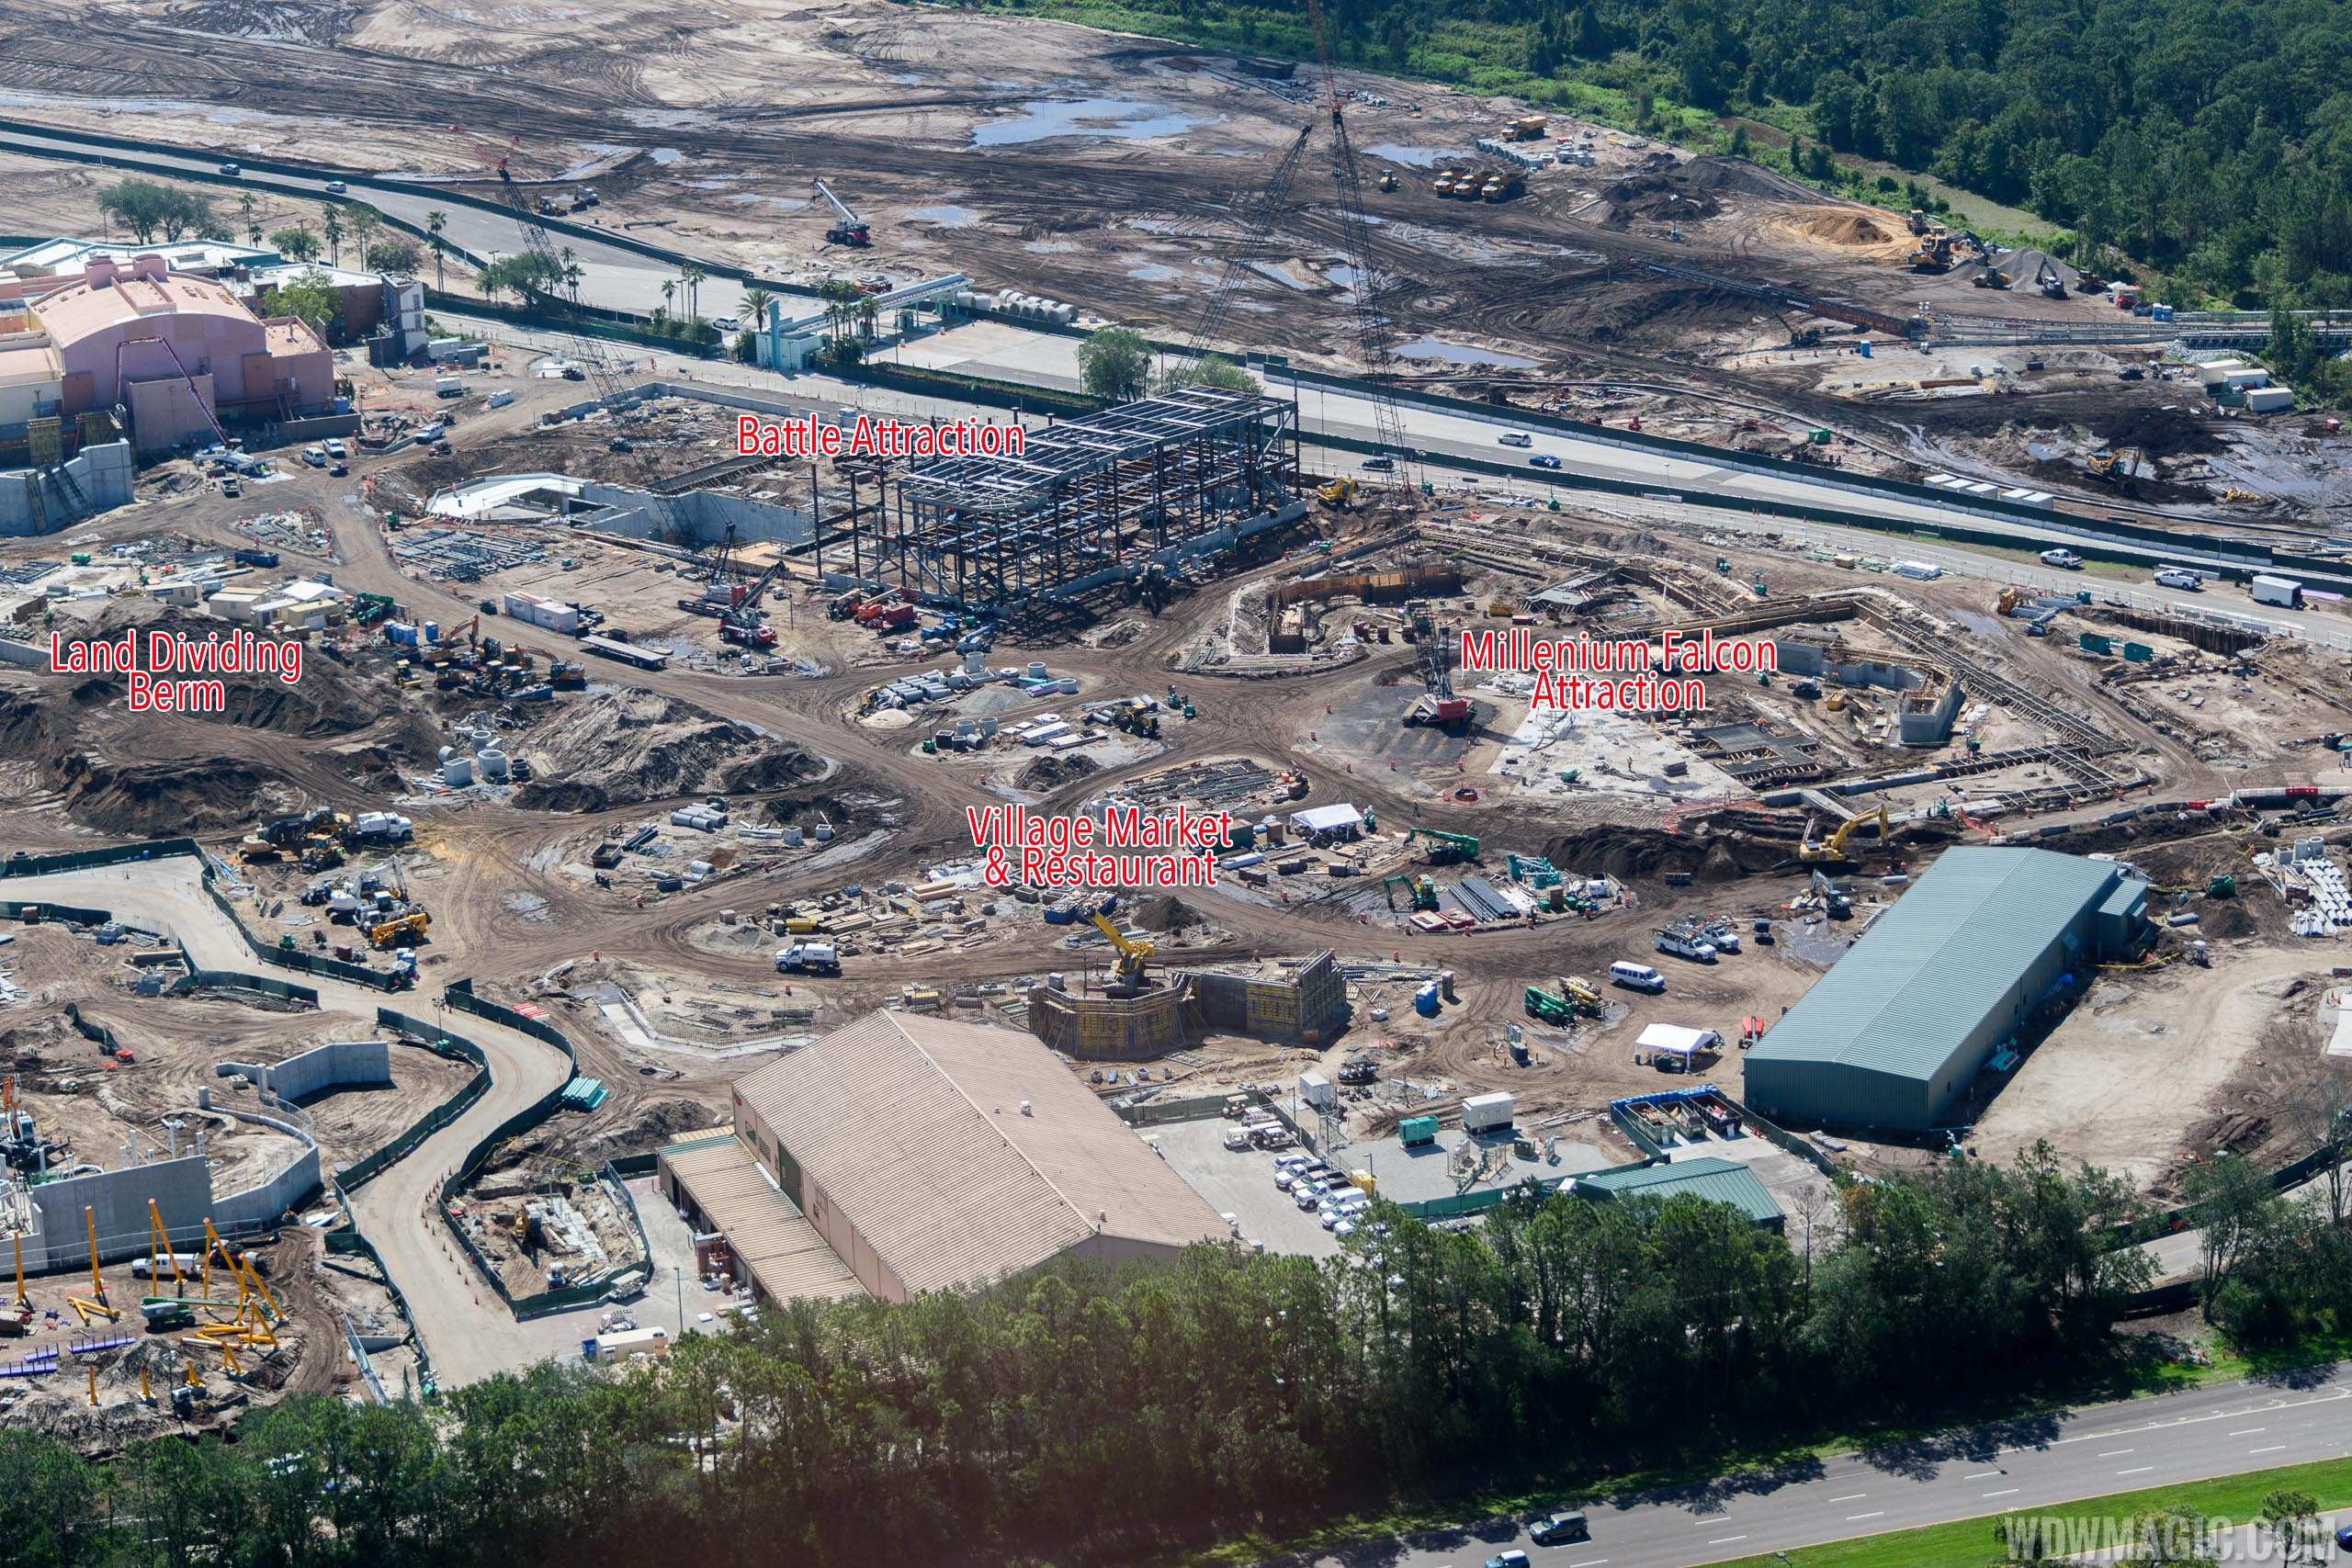 Annotated aerial view of Star Wars Land at Disney's Hollywood Studios